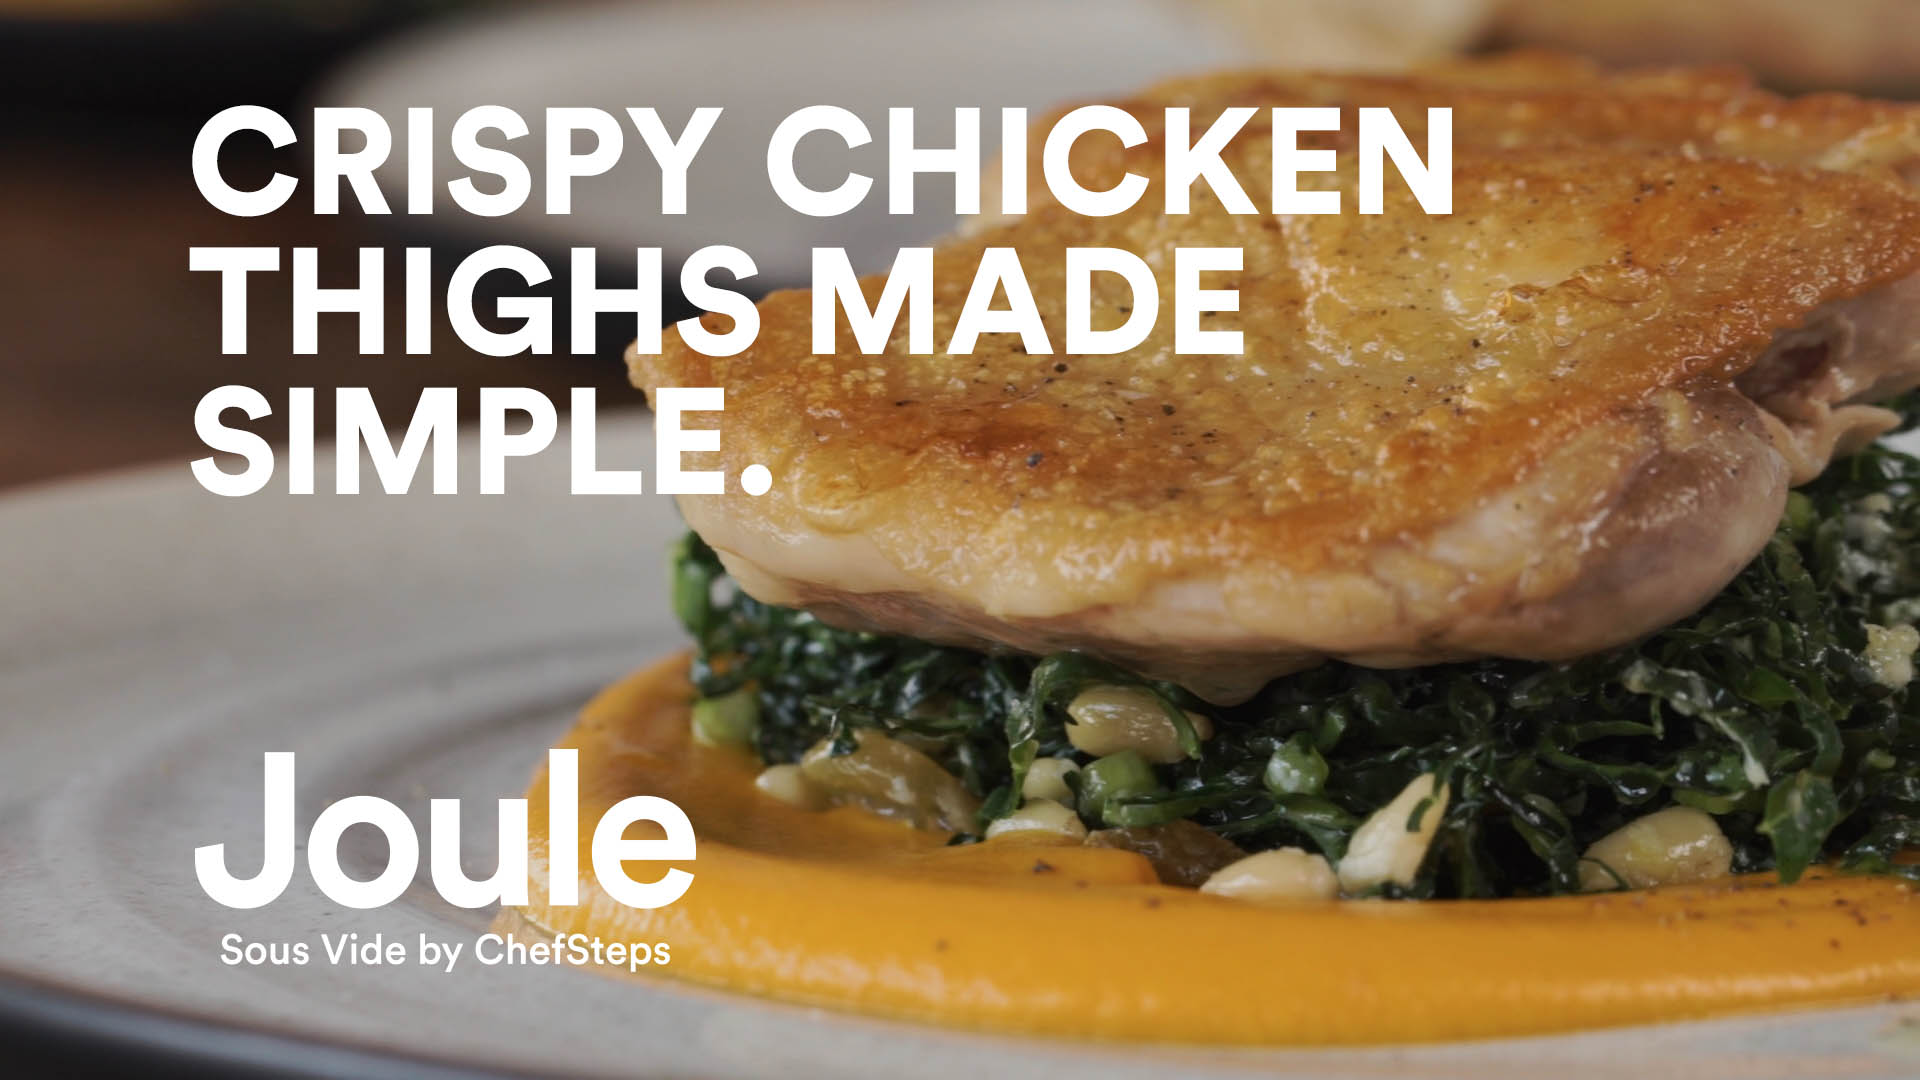 Joule   Crispy Chicken Thighs Made Simple